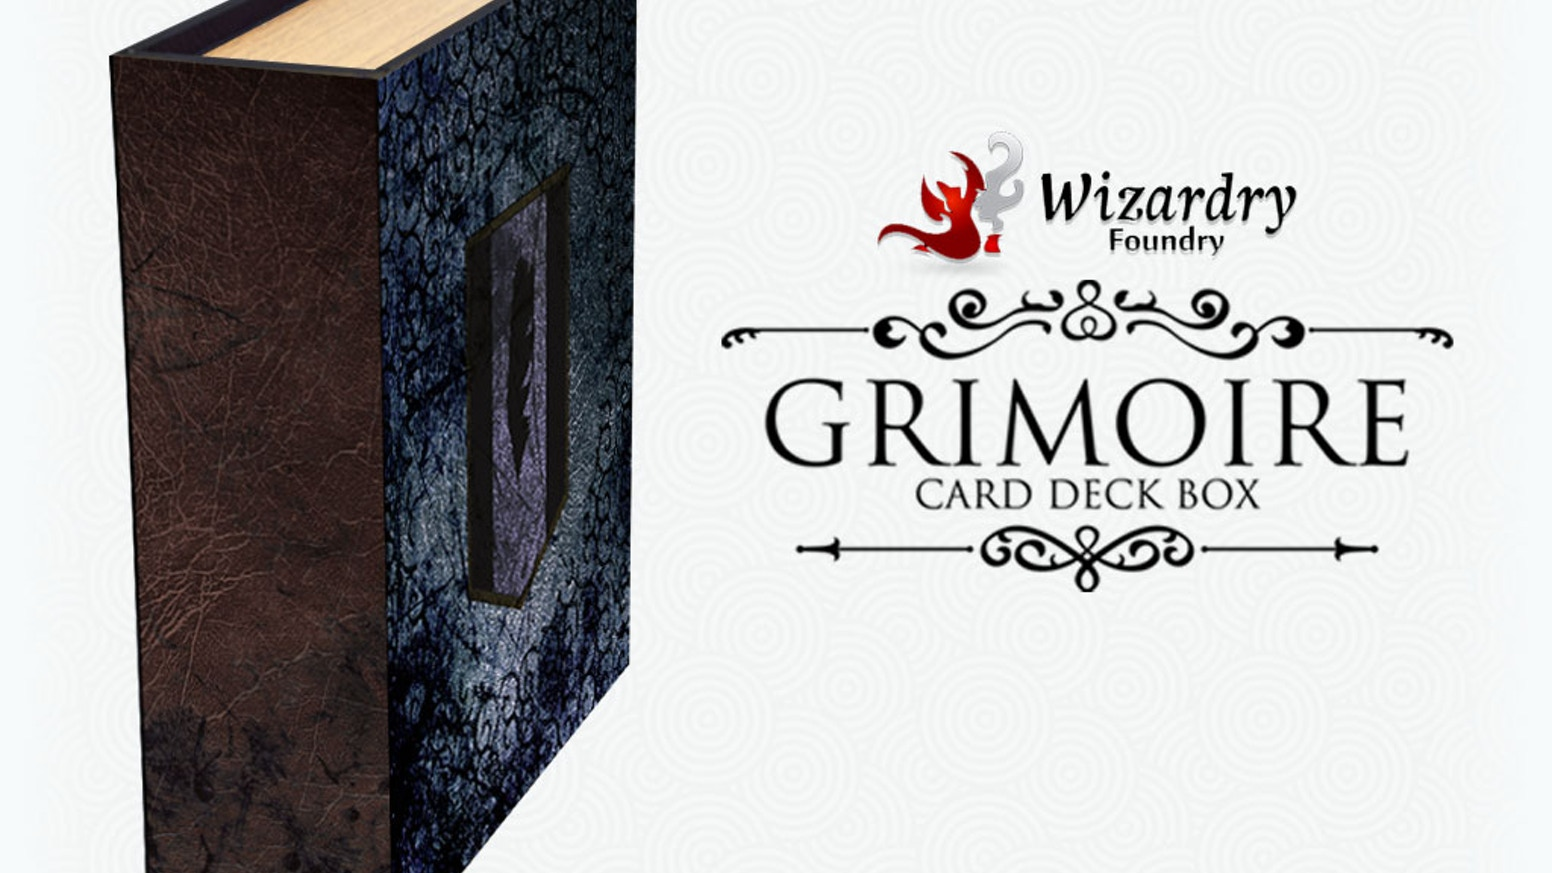 A smaller, more portable version of the Grimoire Deck Box, aimed to carry 3 decks and accessories. All your tournament needs in a box!